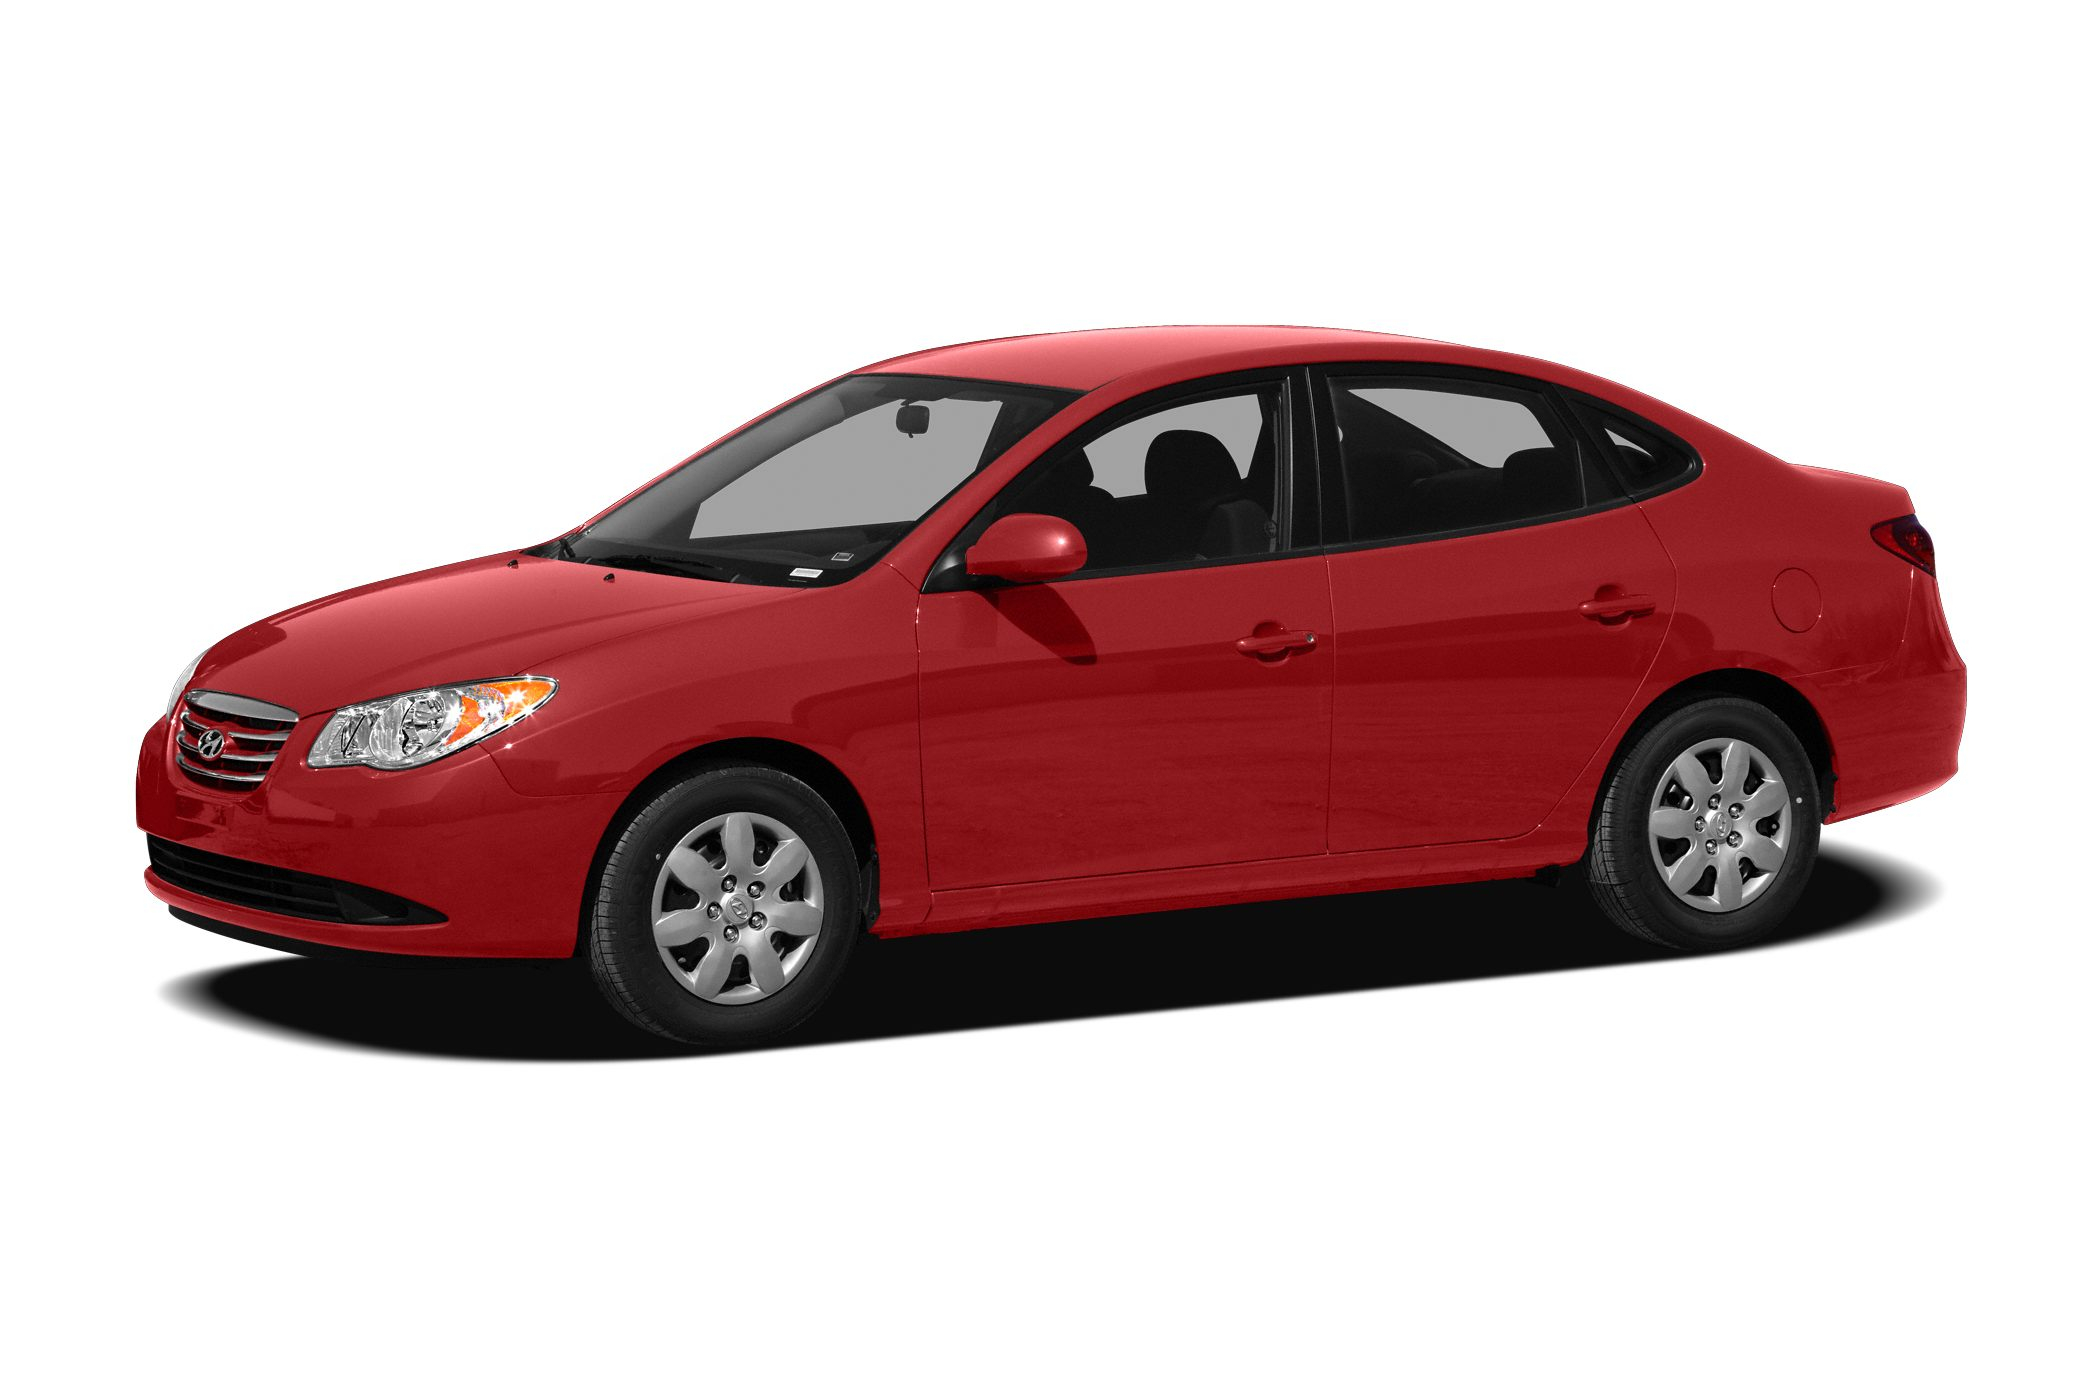 2010 Hyundai Elantra GLS Sedan for sale in Palm Springs for $6,995 with 107,624 miles